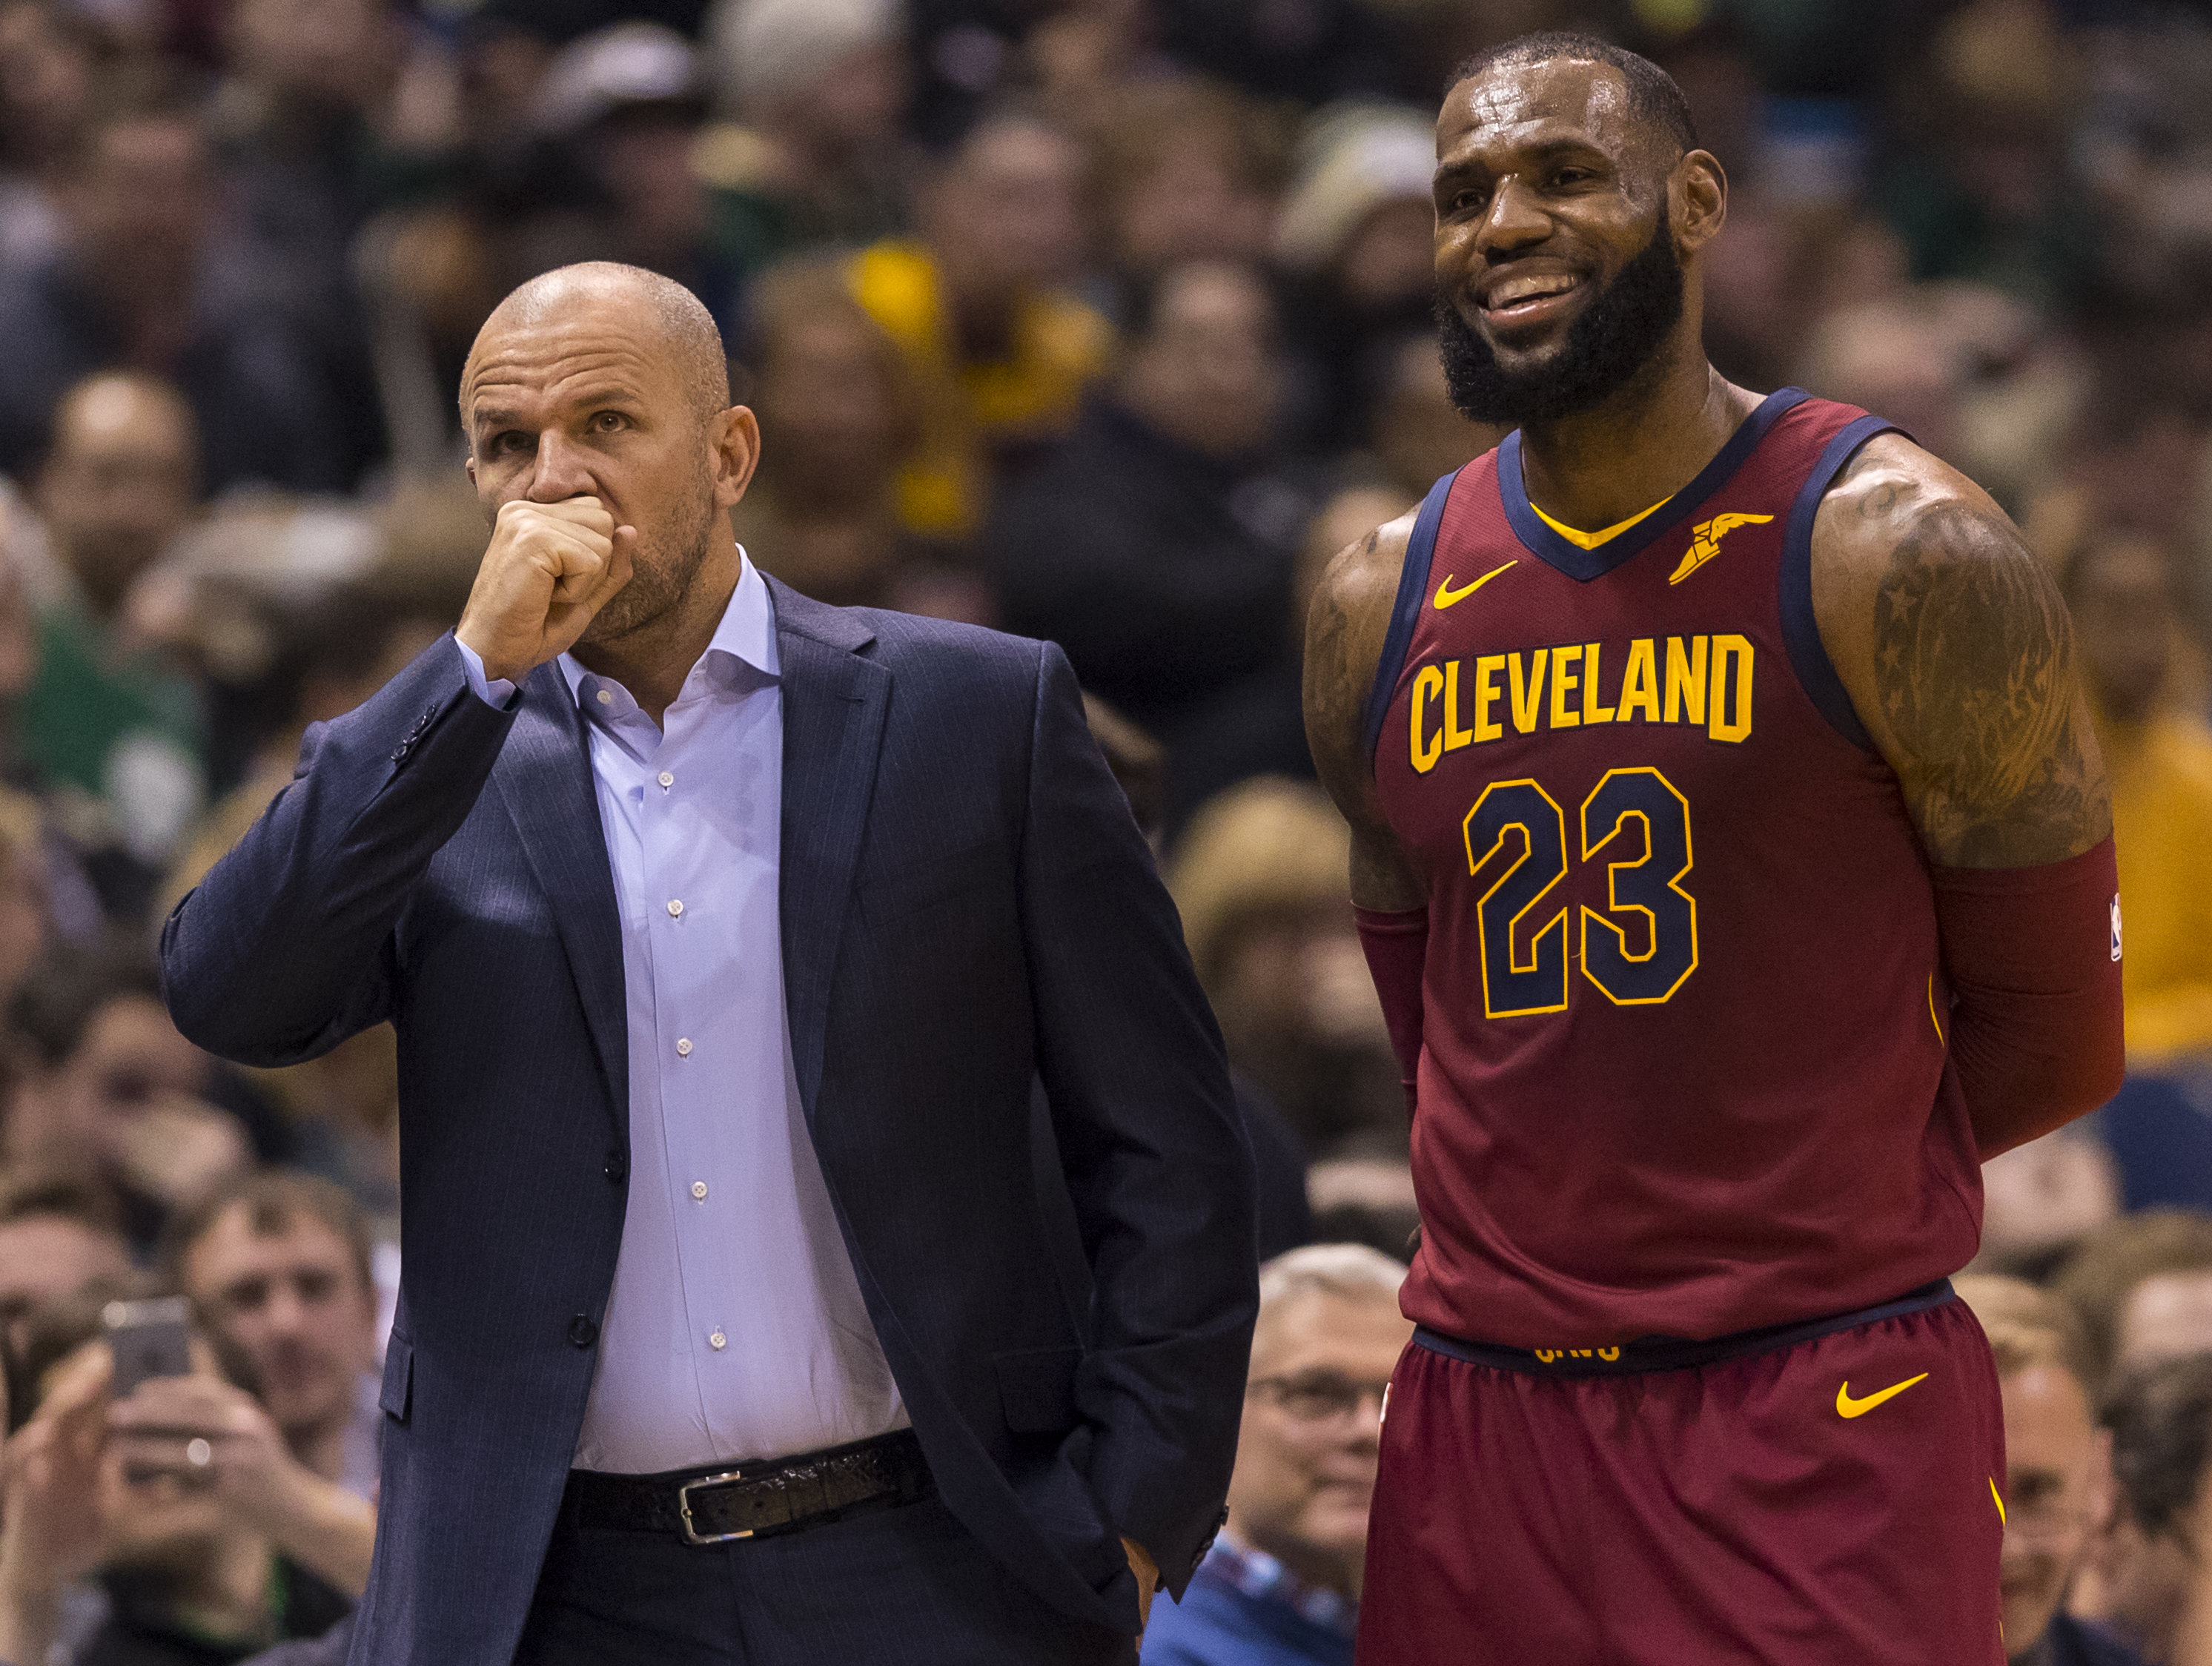 ff160171d34 Dec 19, 2017; Milwaukee, WI, USA; Milwaukee Bucks head coach Jason Kidd  talks with Cleveland Cavaliers forward LeBron James (23) during the first  quarter at ...